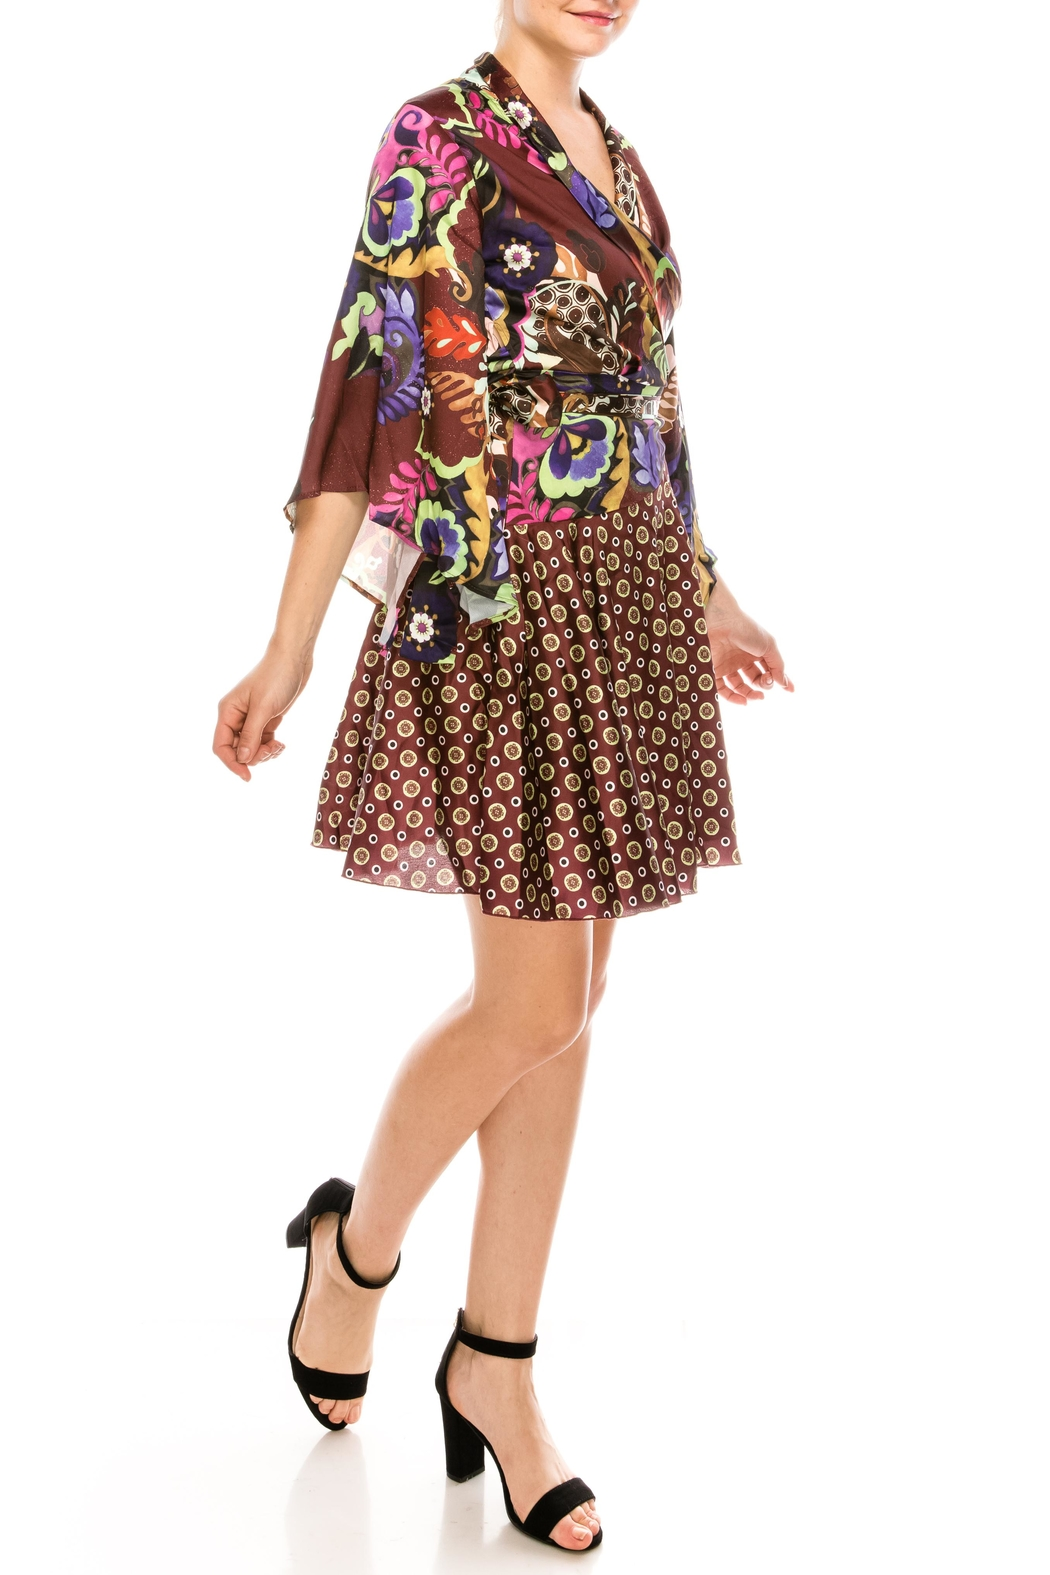 cq by cq Mixed Print Dress - Side Cropped Image